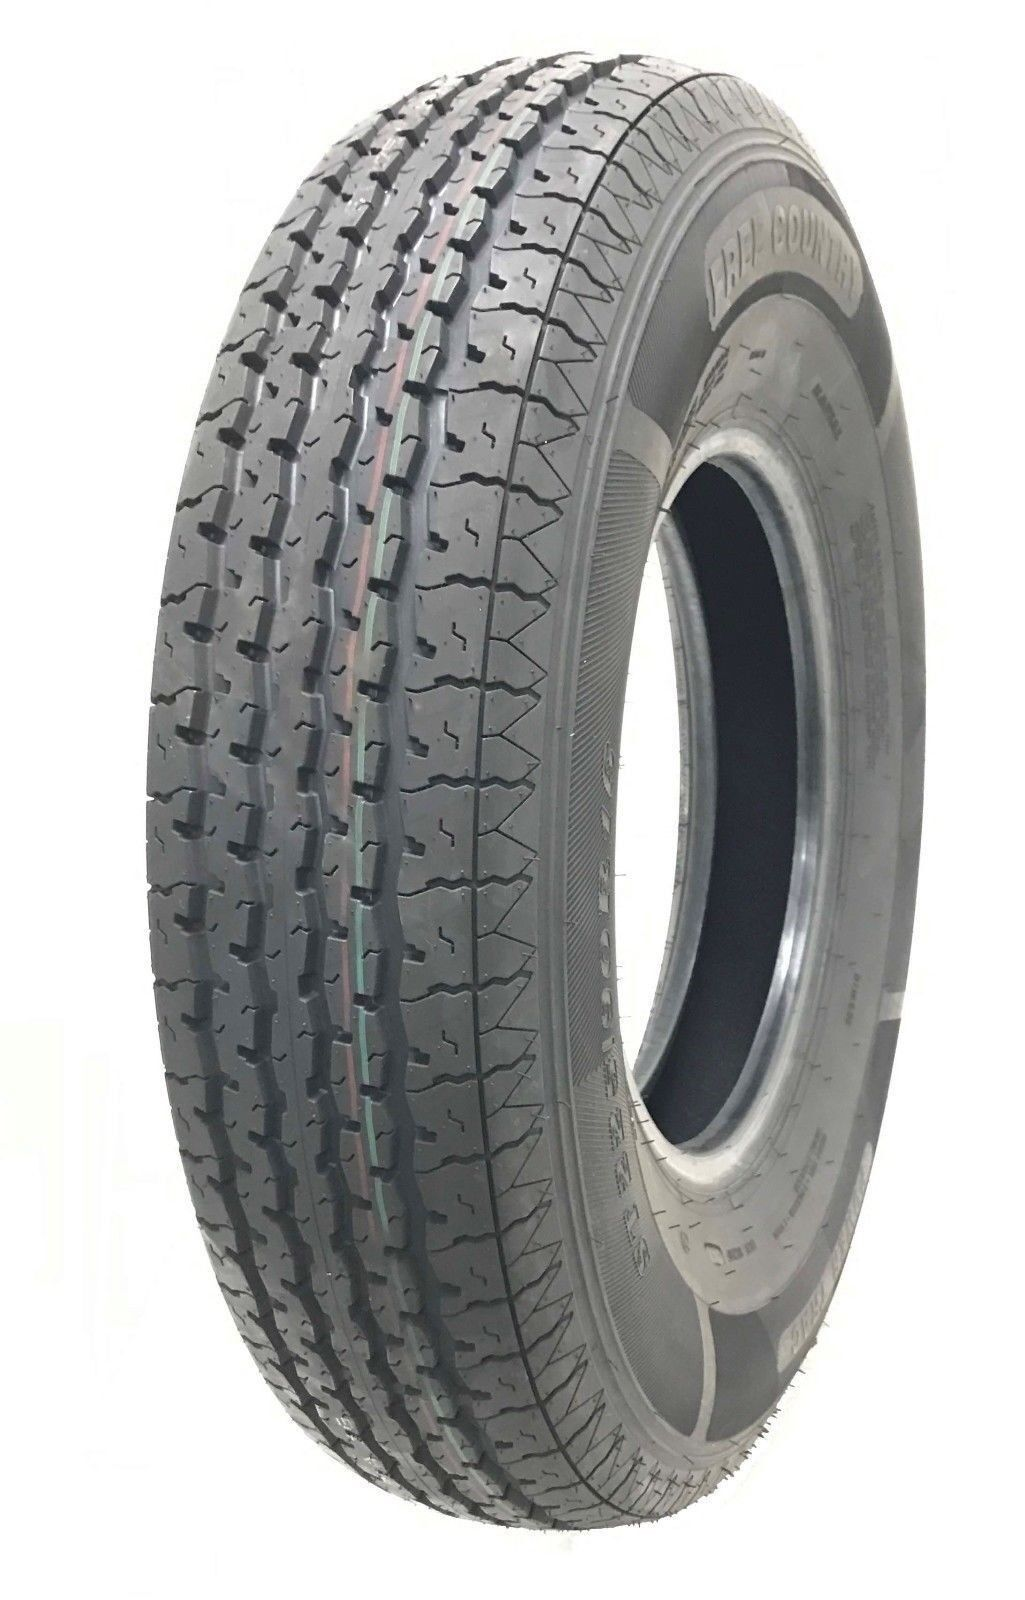 New Free Coutntry Trailer Radial Tires ST205 90R15 10PR Load Range E - 11081